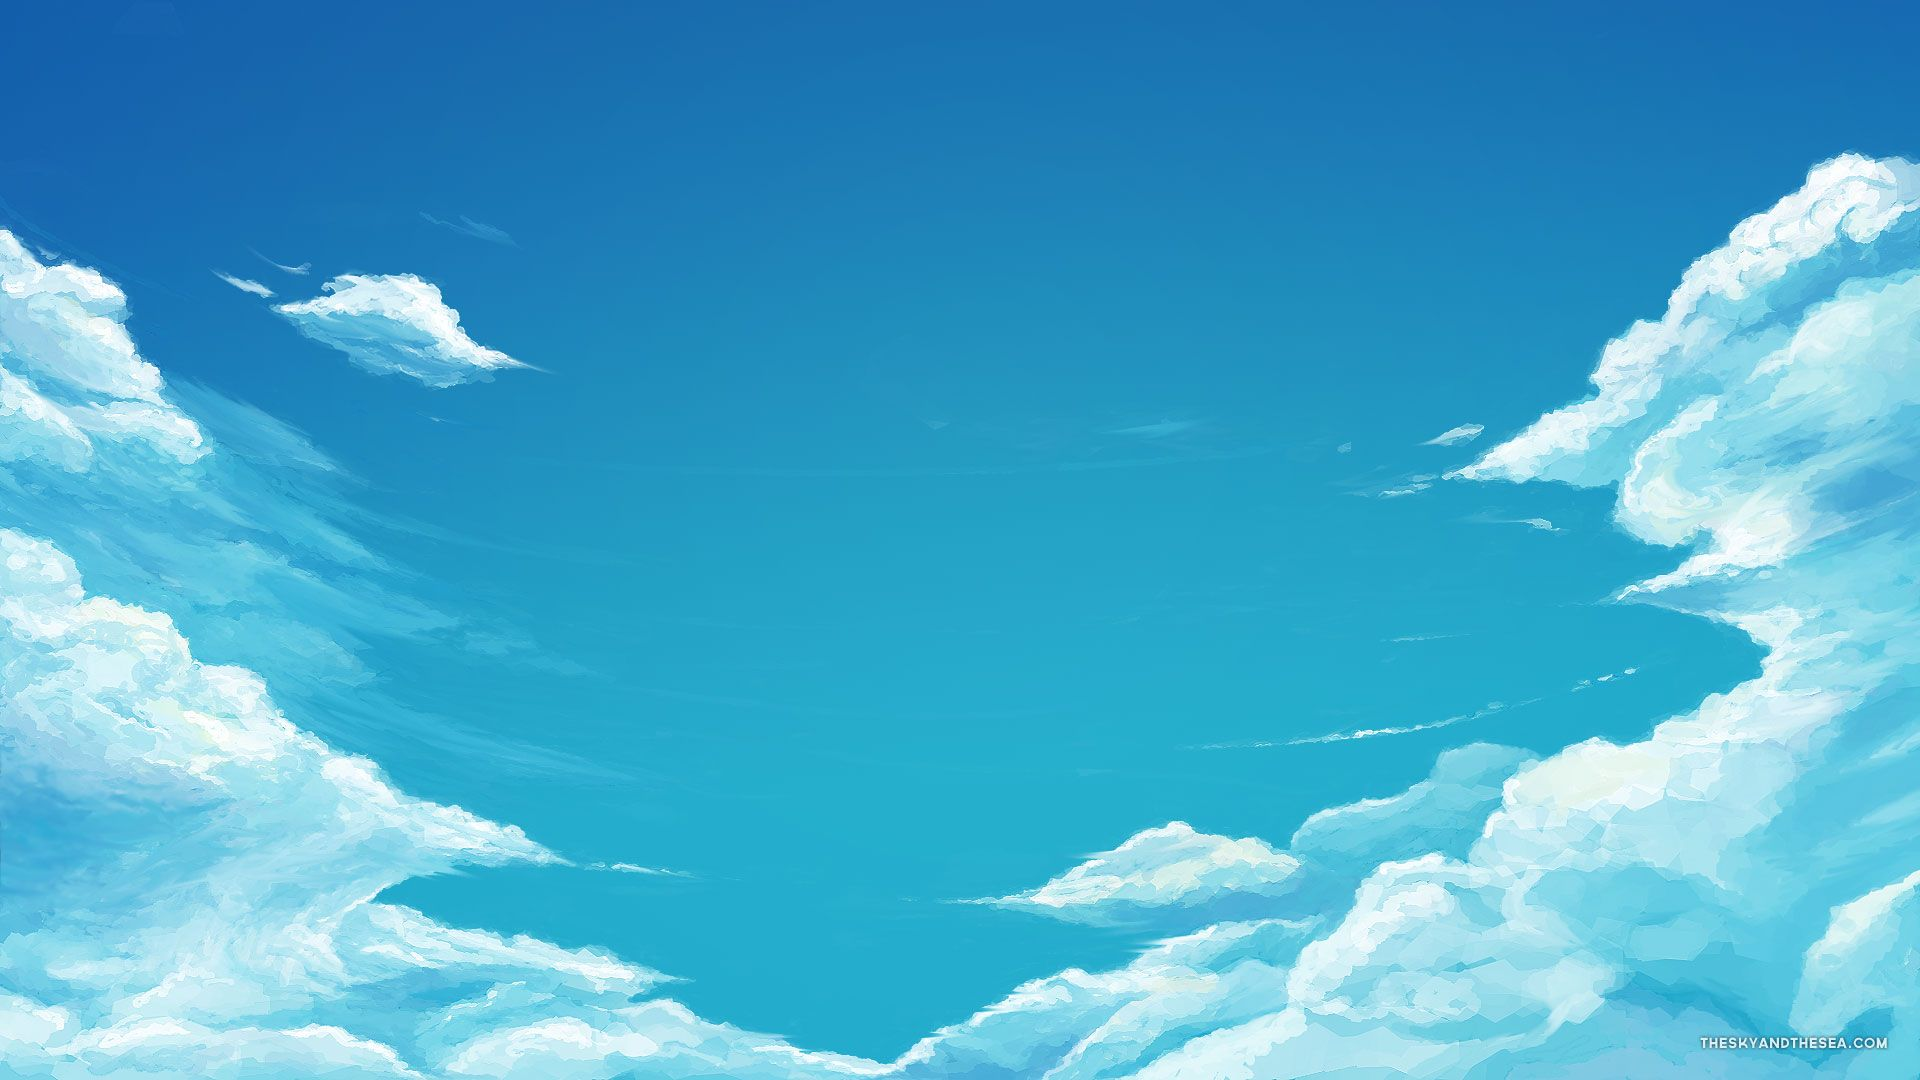 Free Wallpapers Blue sky and clouds 1920x1080 wallpaper